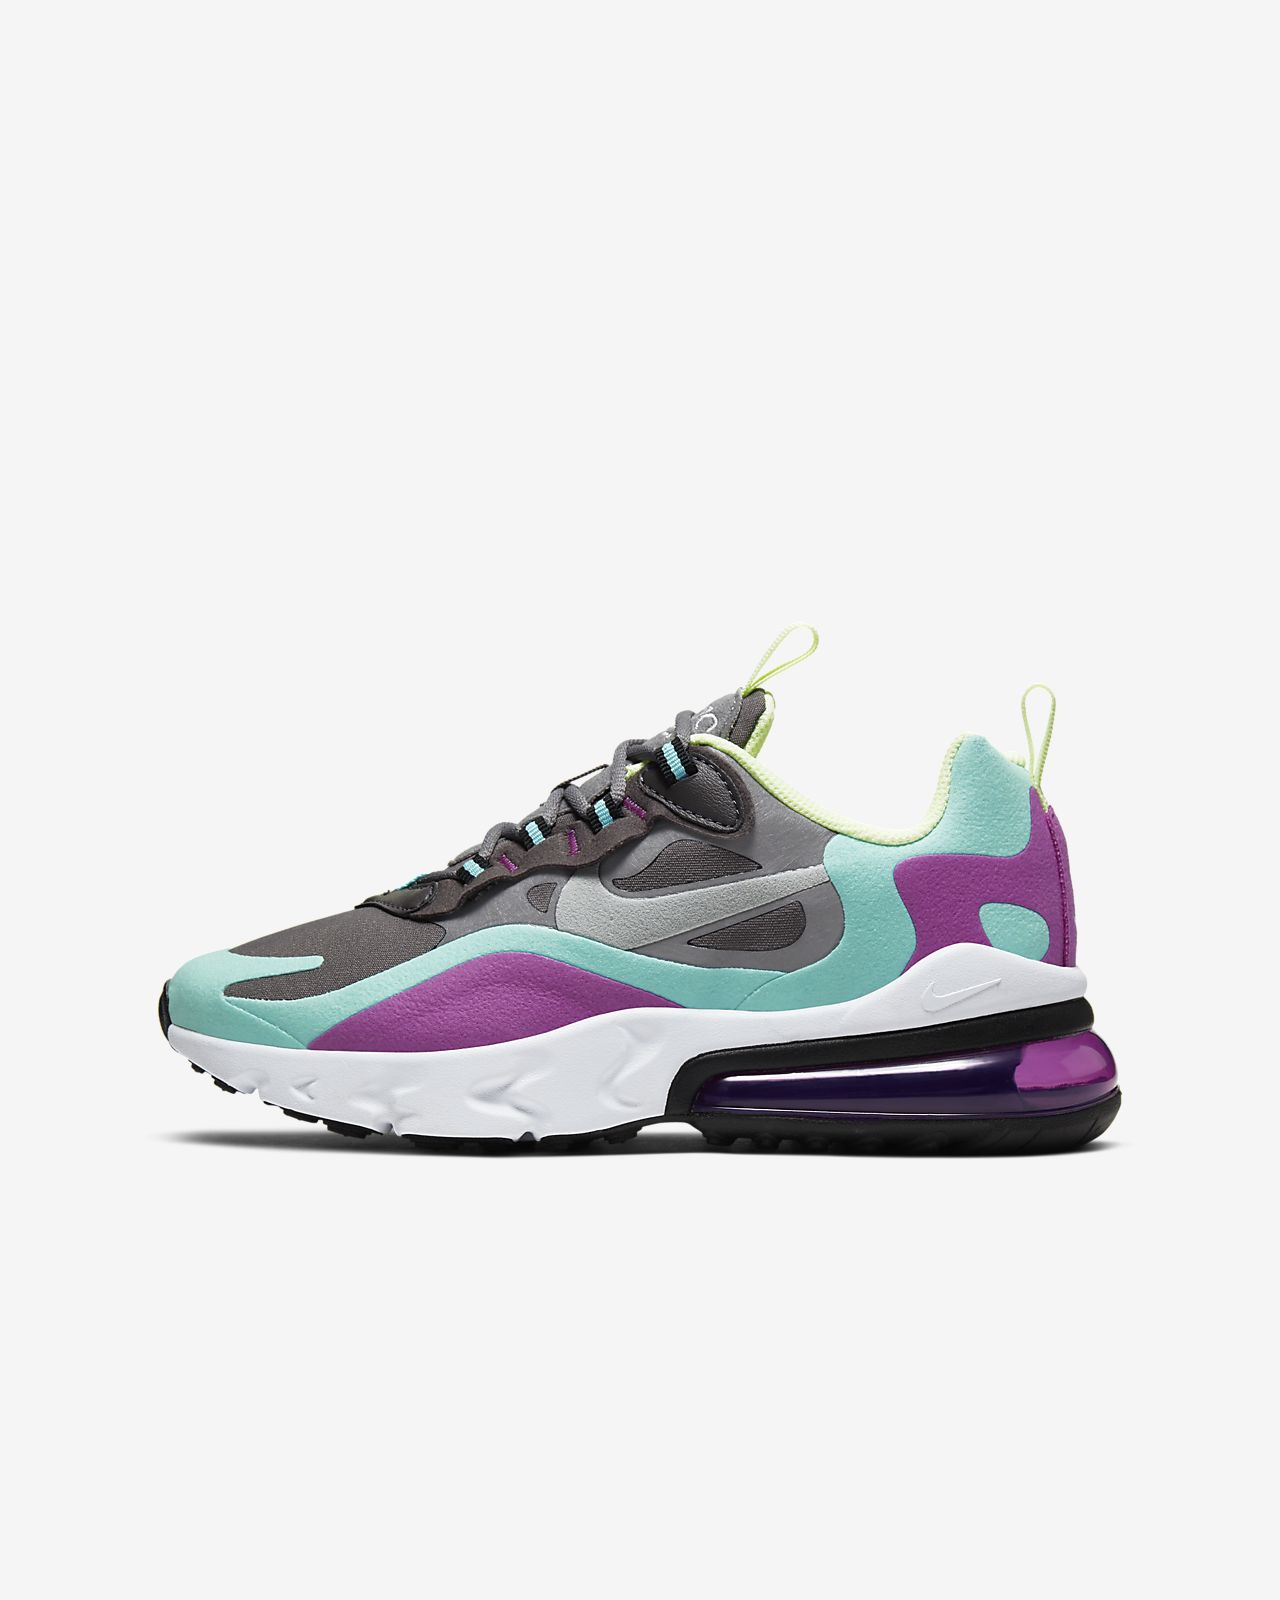 nike air max 270 react price philippines